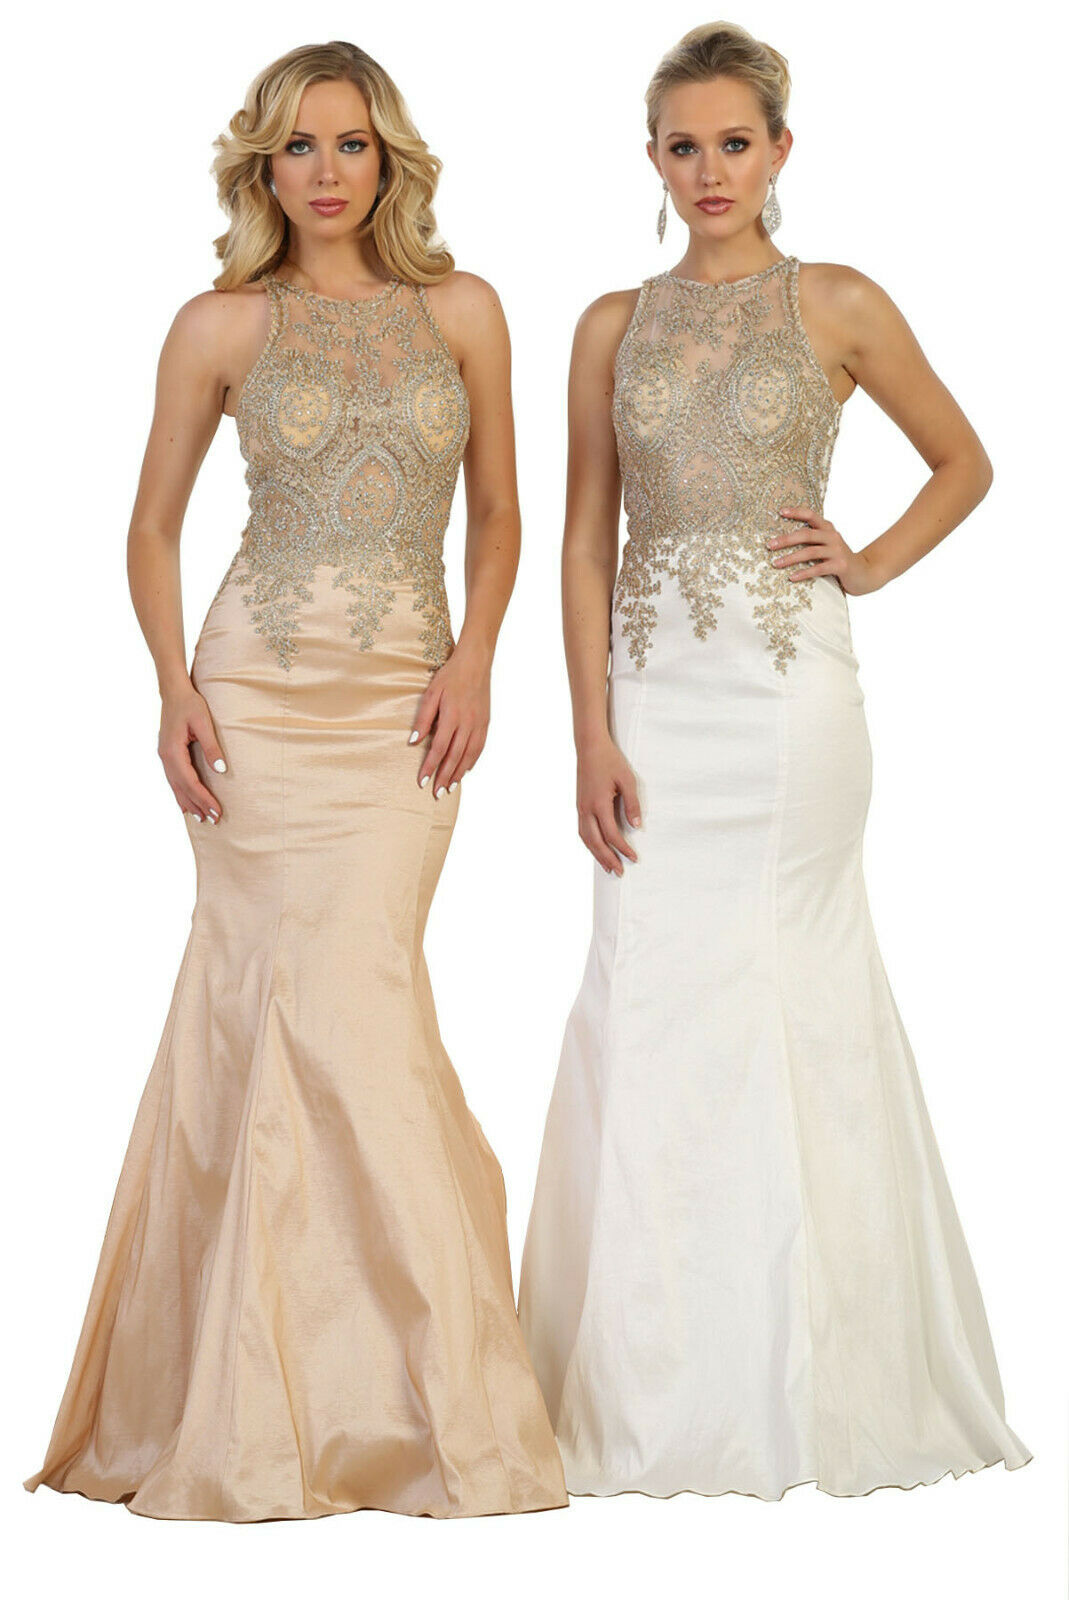 SALE RED CARPET MERMAID STRETCHY DRESS PROM SPECIAL OCCASION FORMAL FITTED GOWNS